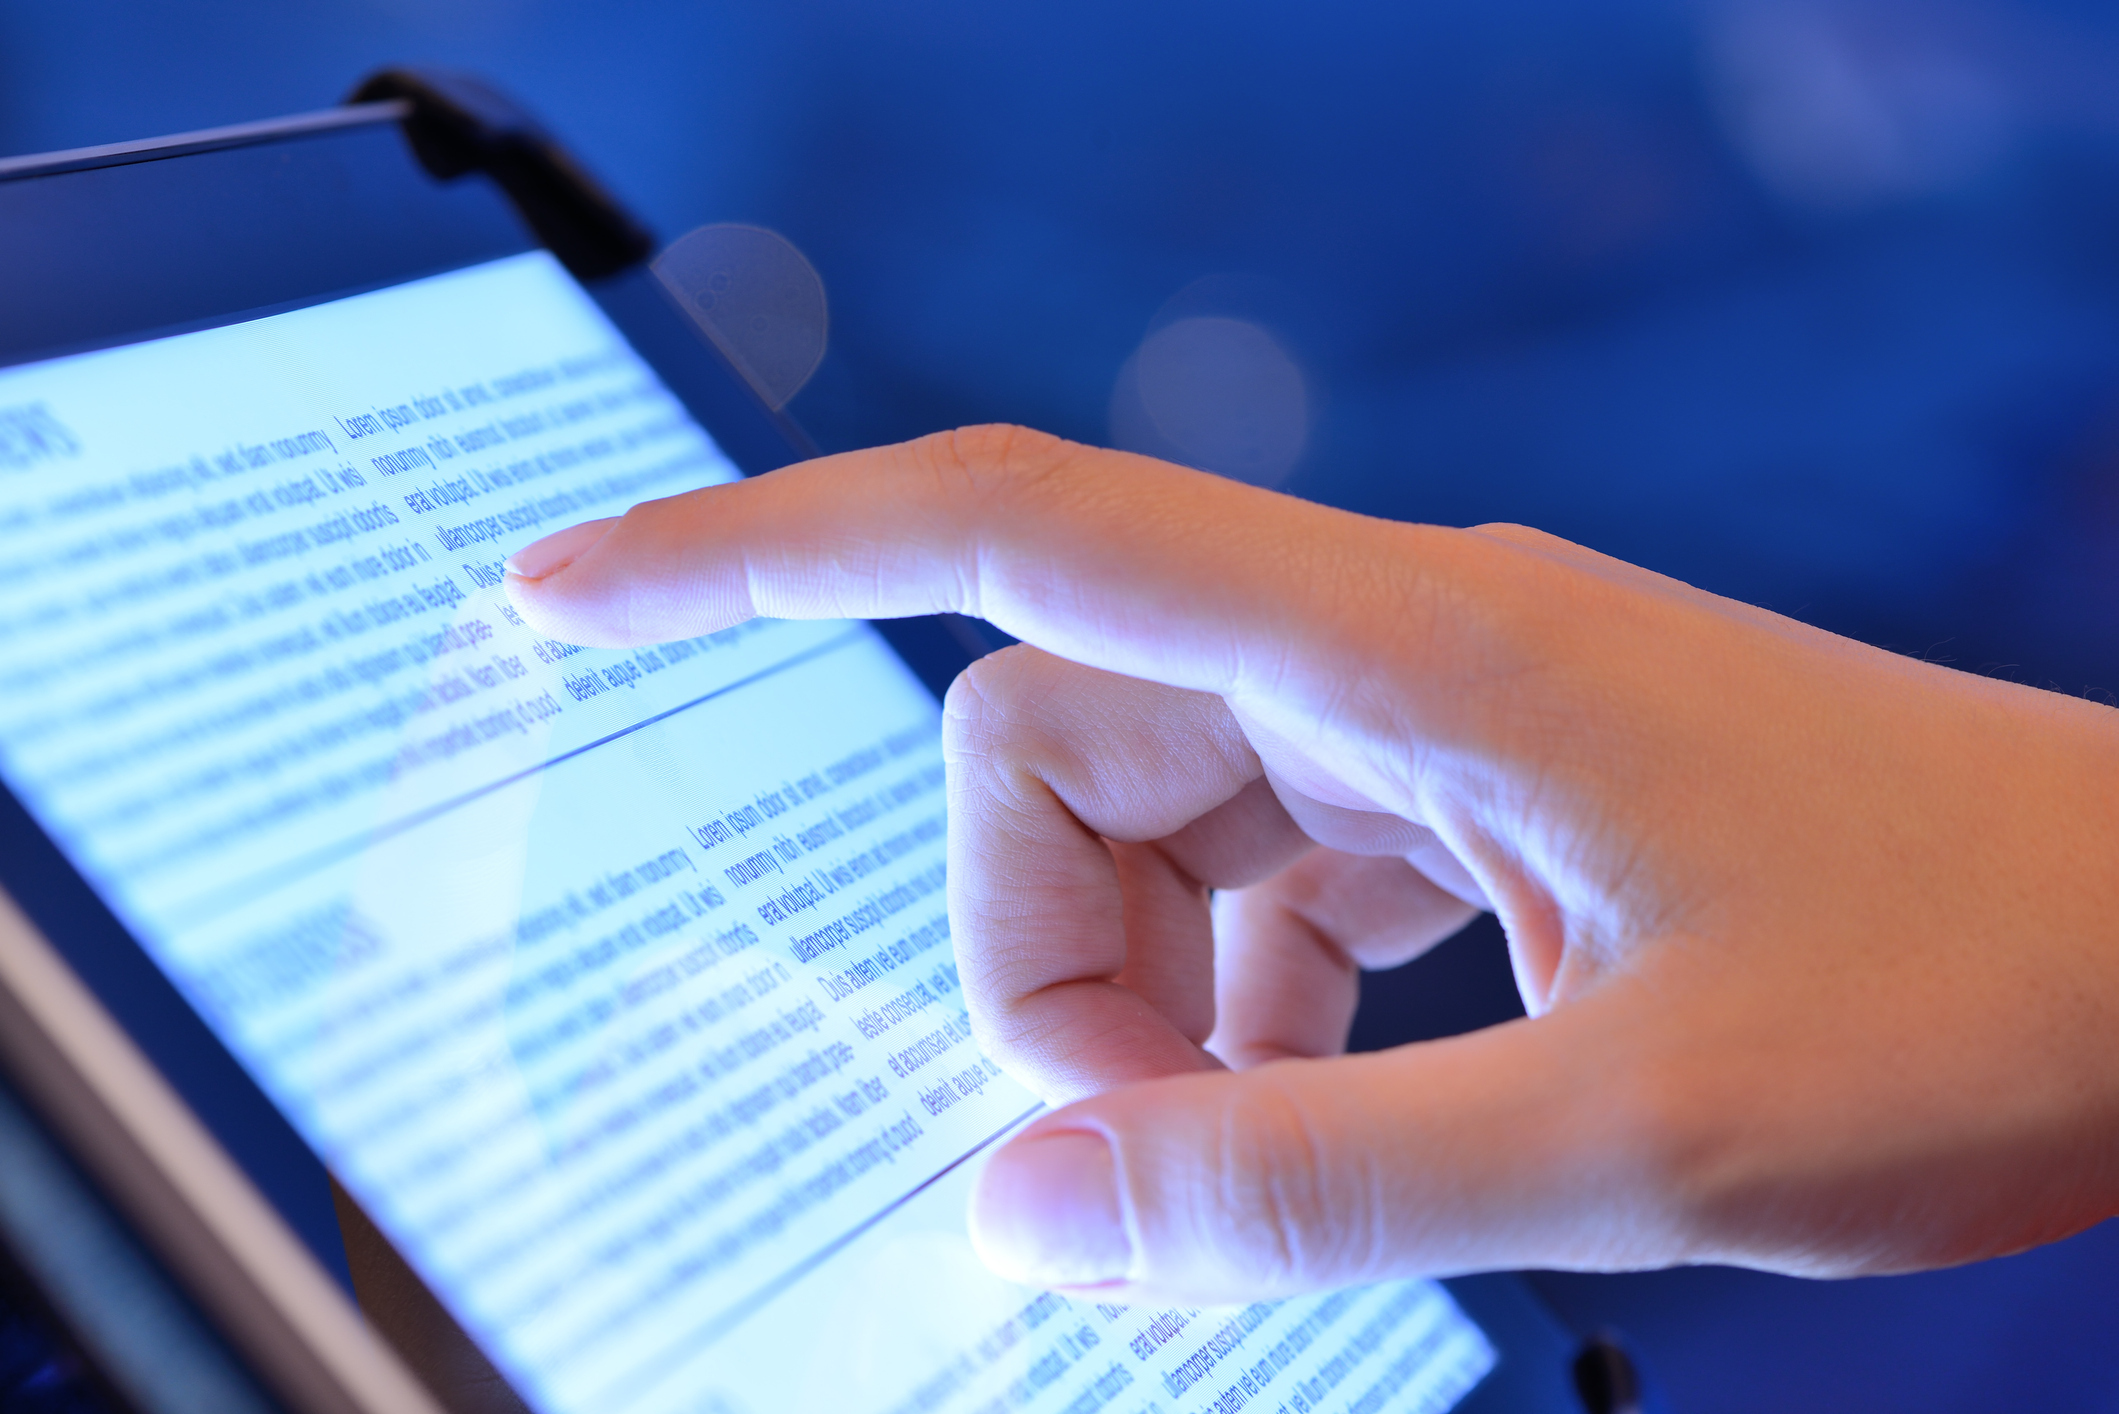 Person touching tablet with finger to scroll and read